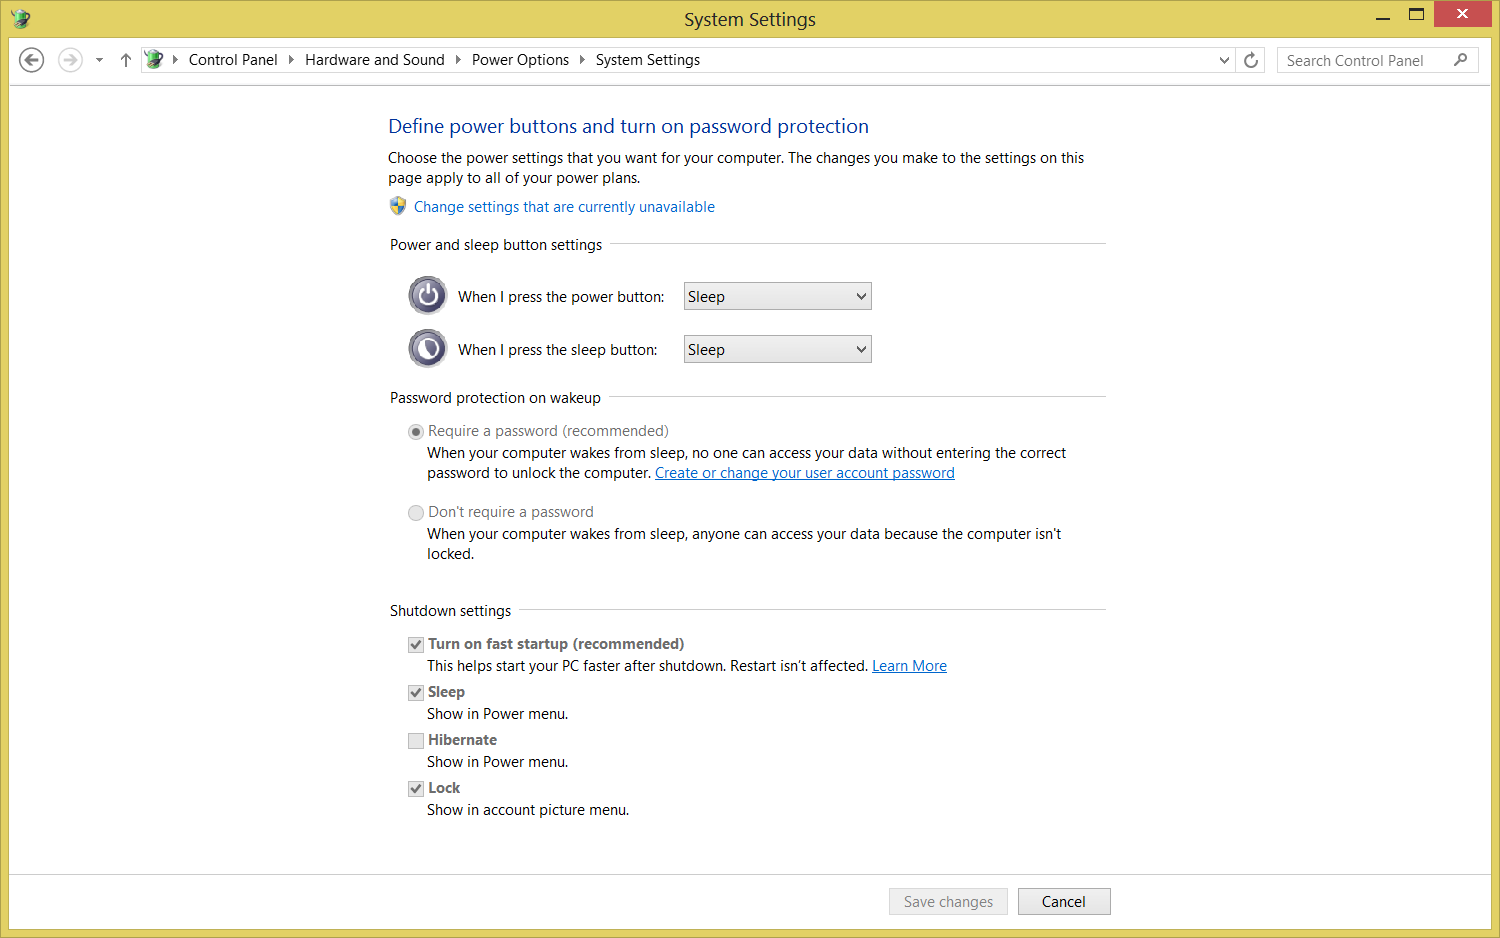 PowerOptions_SystemSettings_FastStart_Windows8.png